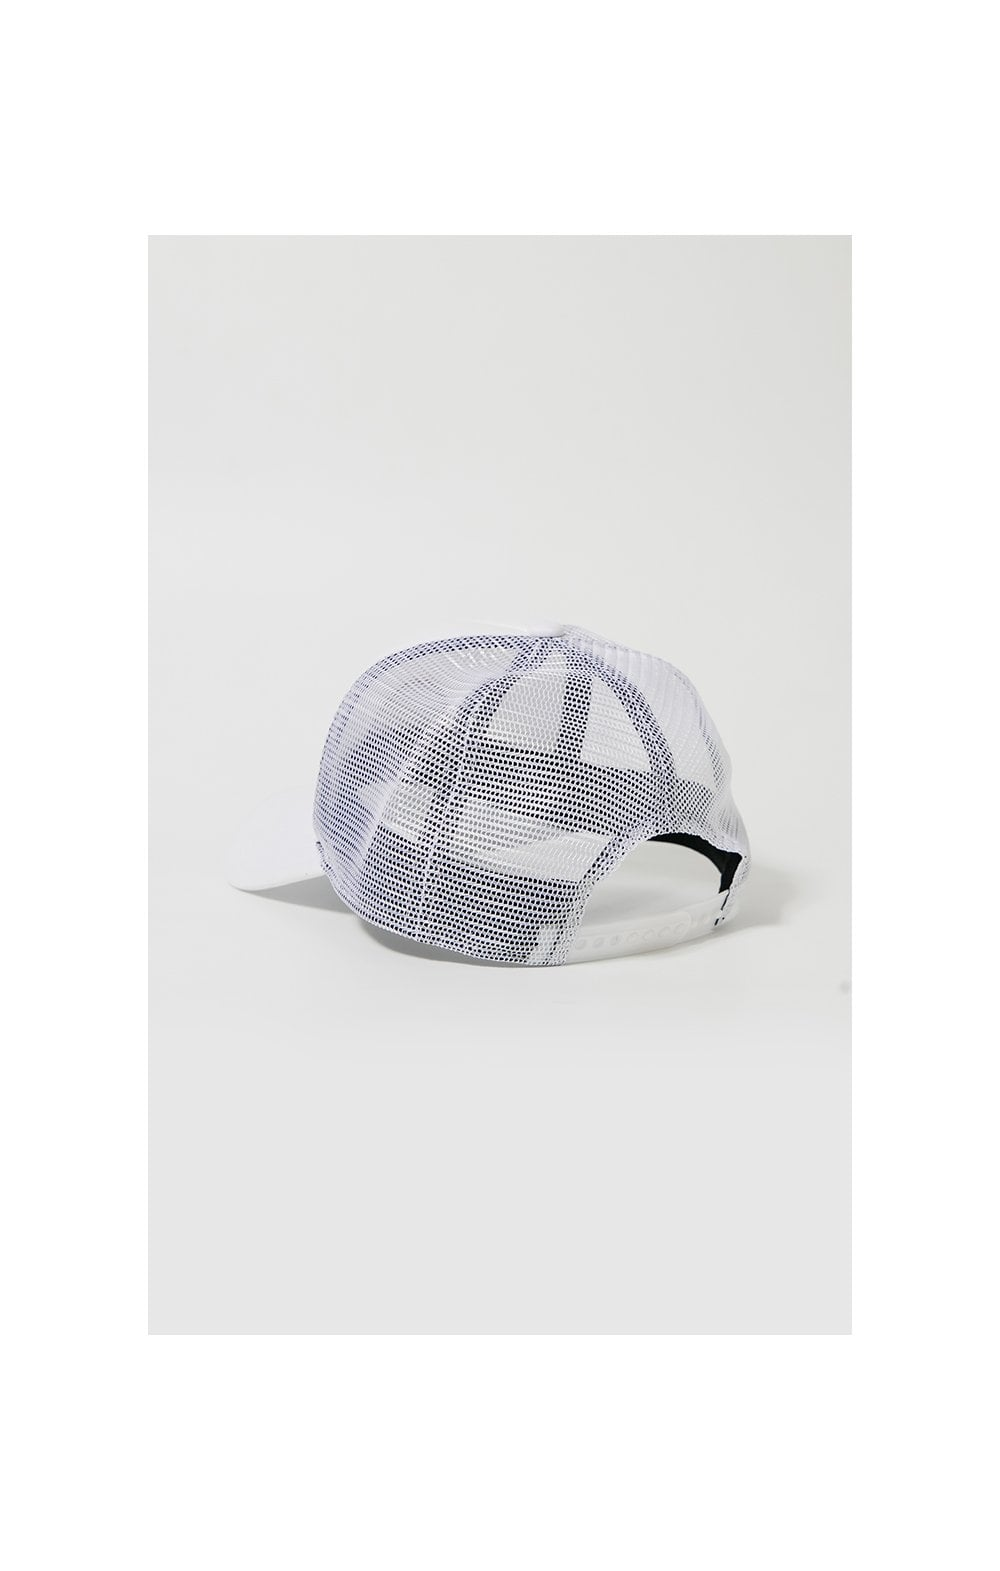 SikSilk Mesh Foam Trucker - White (1)